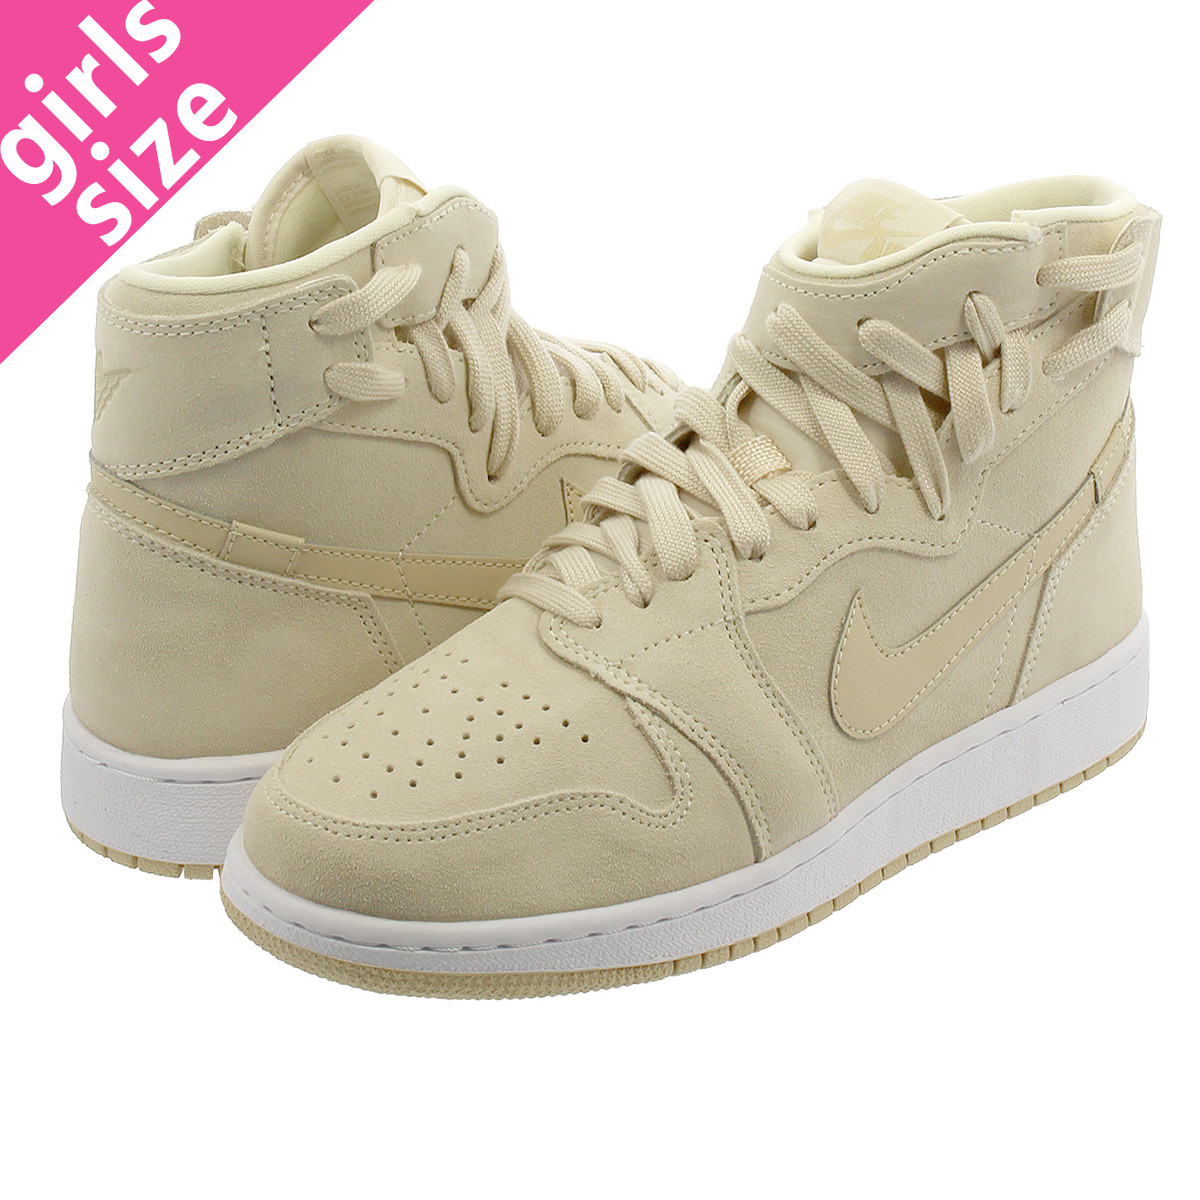 c4d613004097 NIKE WMNS AIR JORDAN 1 REBEL XX Nike women Air Jordan 1 level XX LIGHT CREAM DESERT  ORE WHITE ar5599-201-l